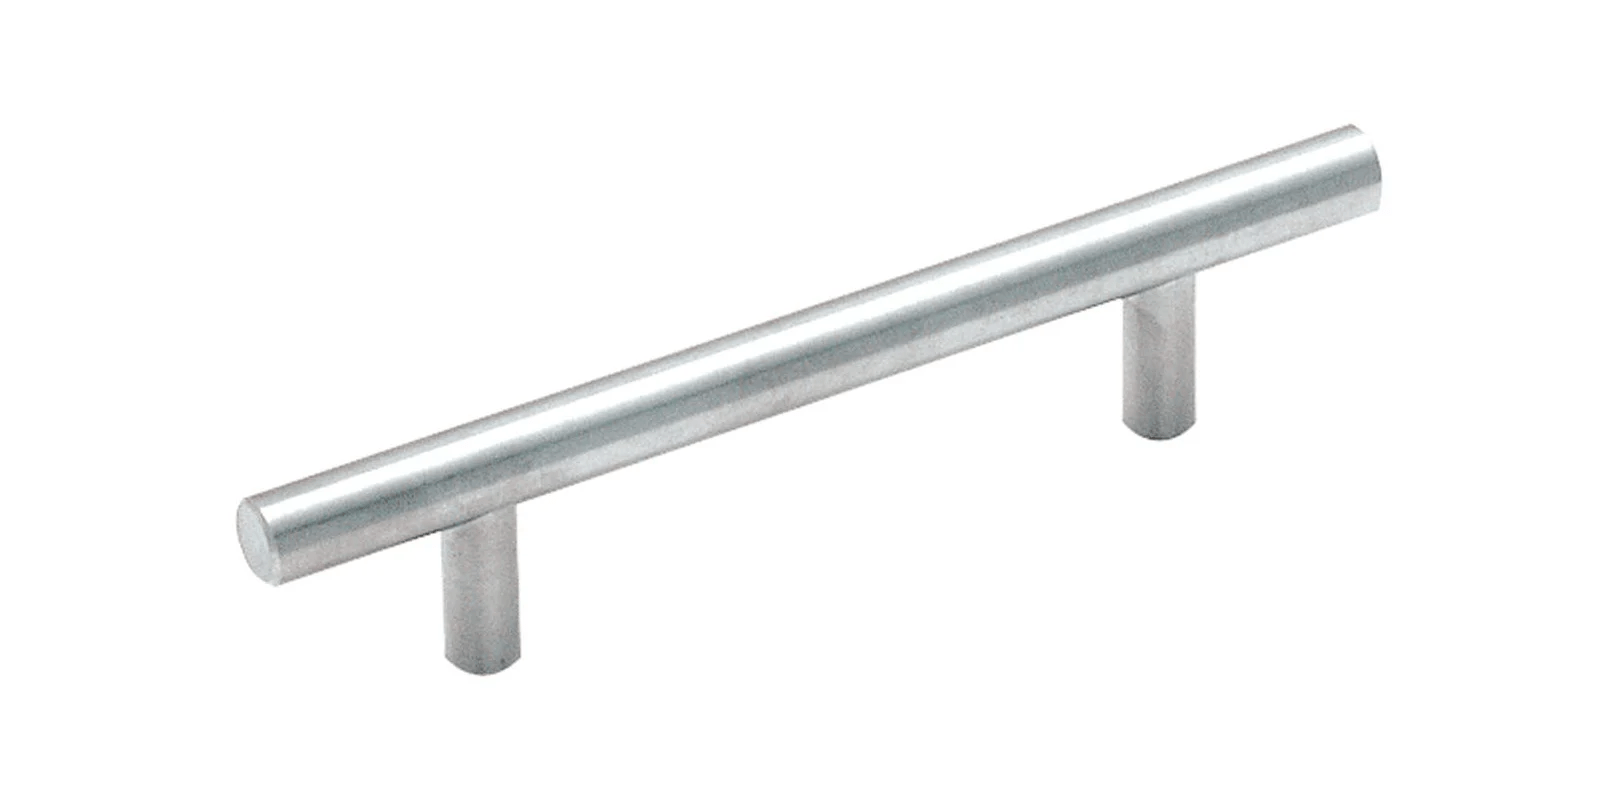 Amerock Bp Ss Stainless Steel Stainless Steel 3 3 4 Inch Center To Center Bar Cabinet Pull